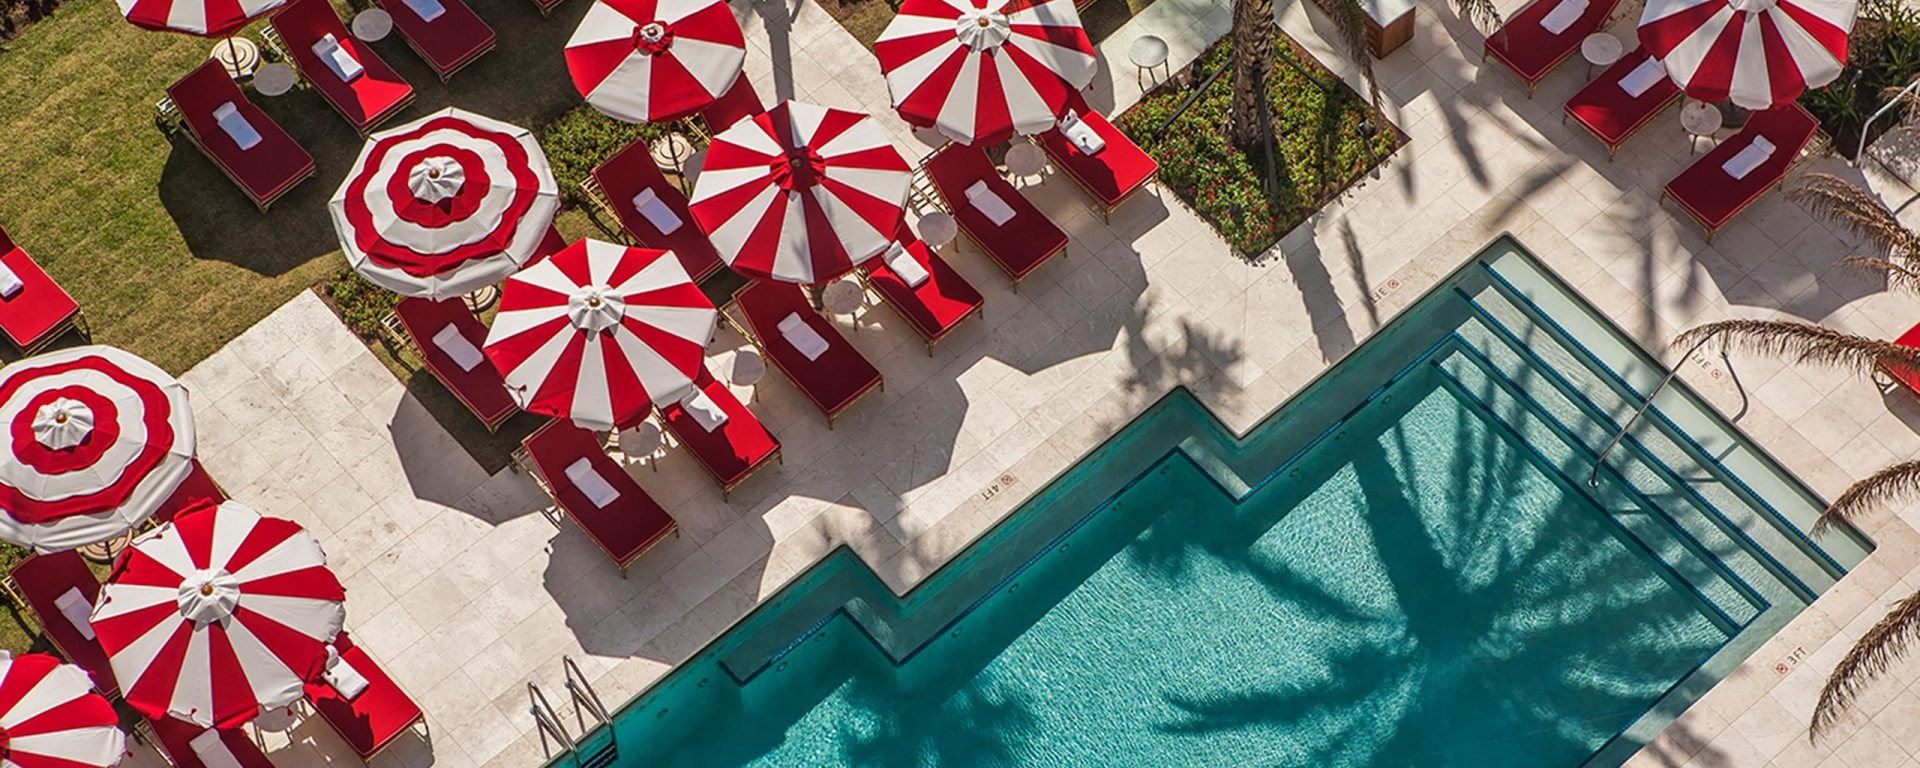 hotel pool surrounded by palm trees and striped umbrellas